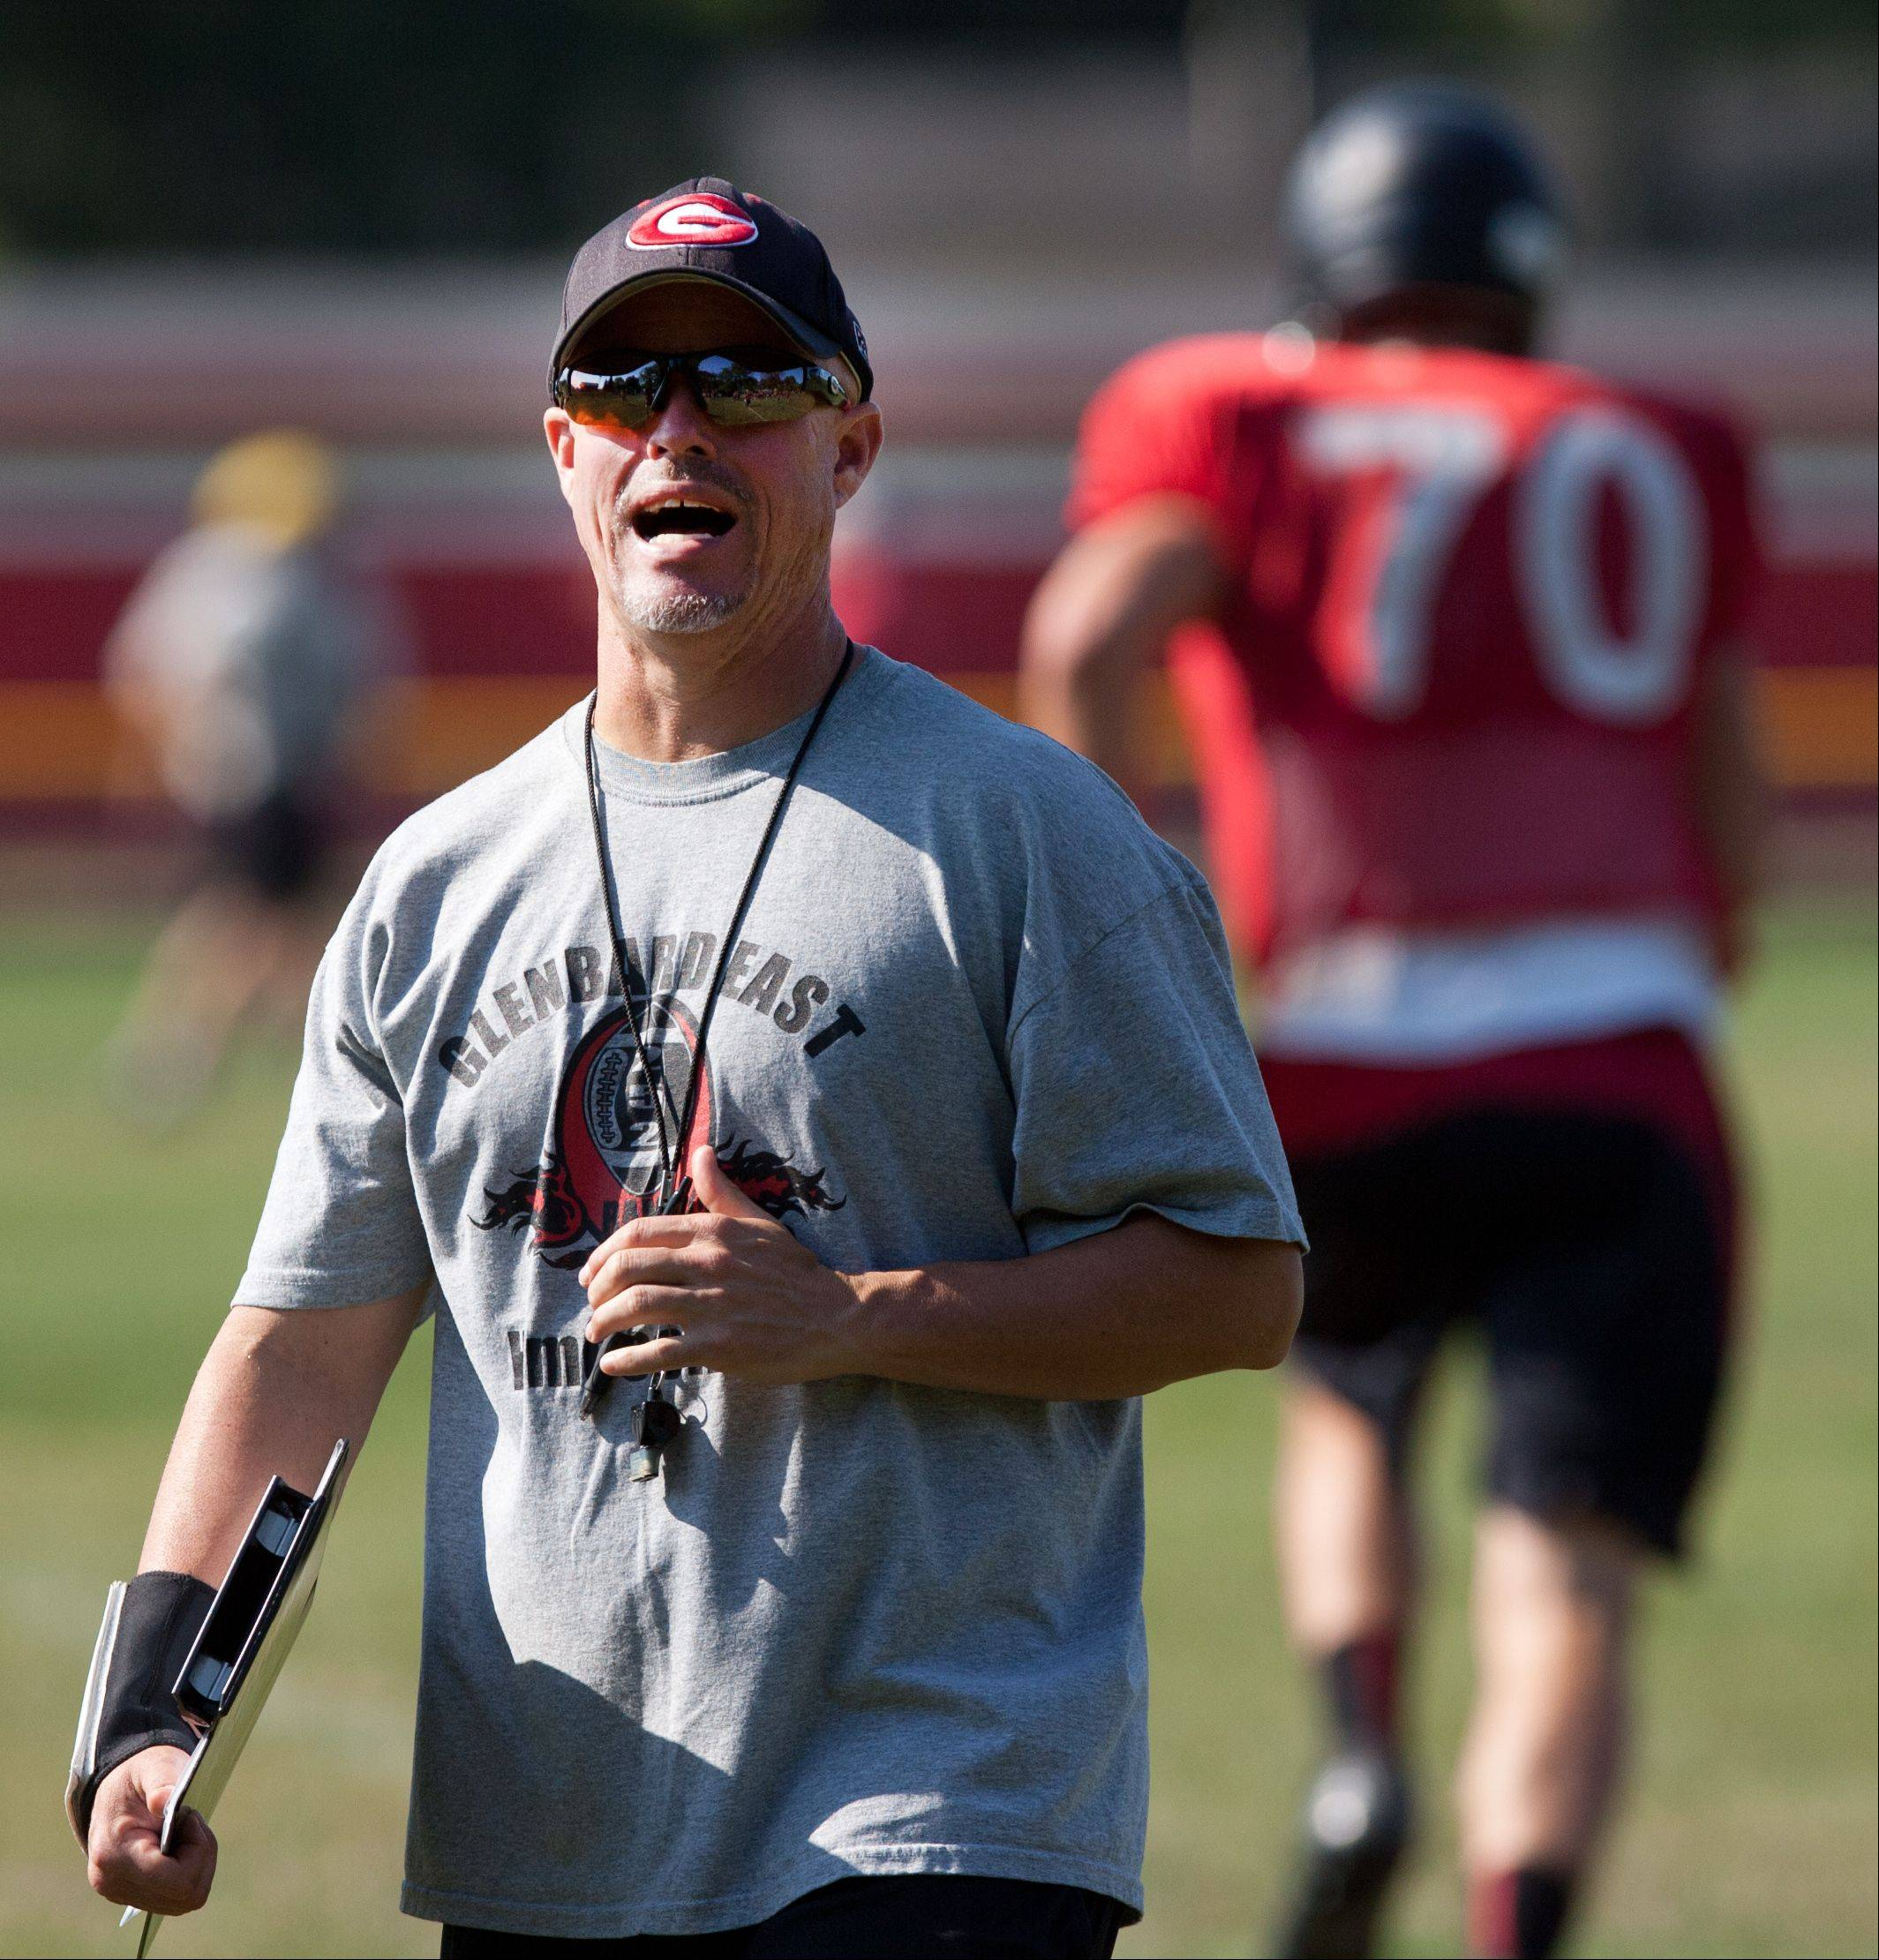 Glenbard East head football coach John Walters monitors practice.